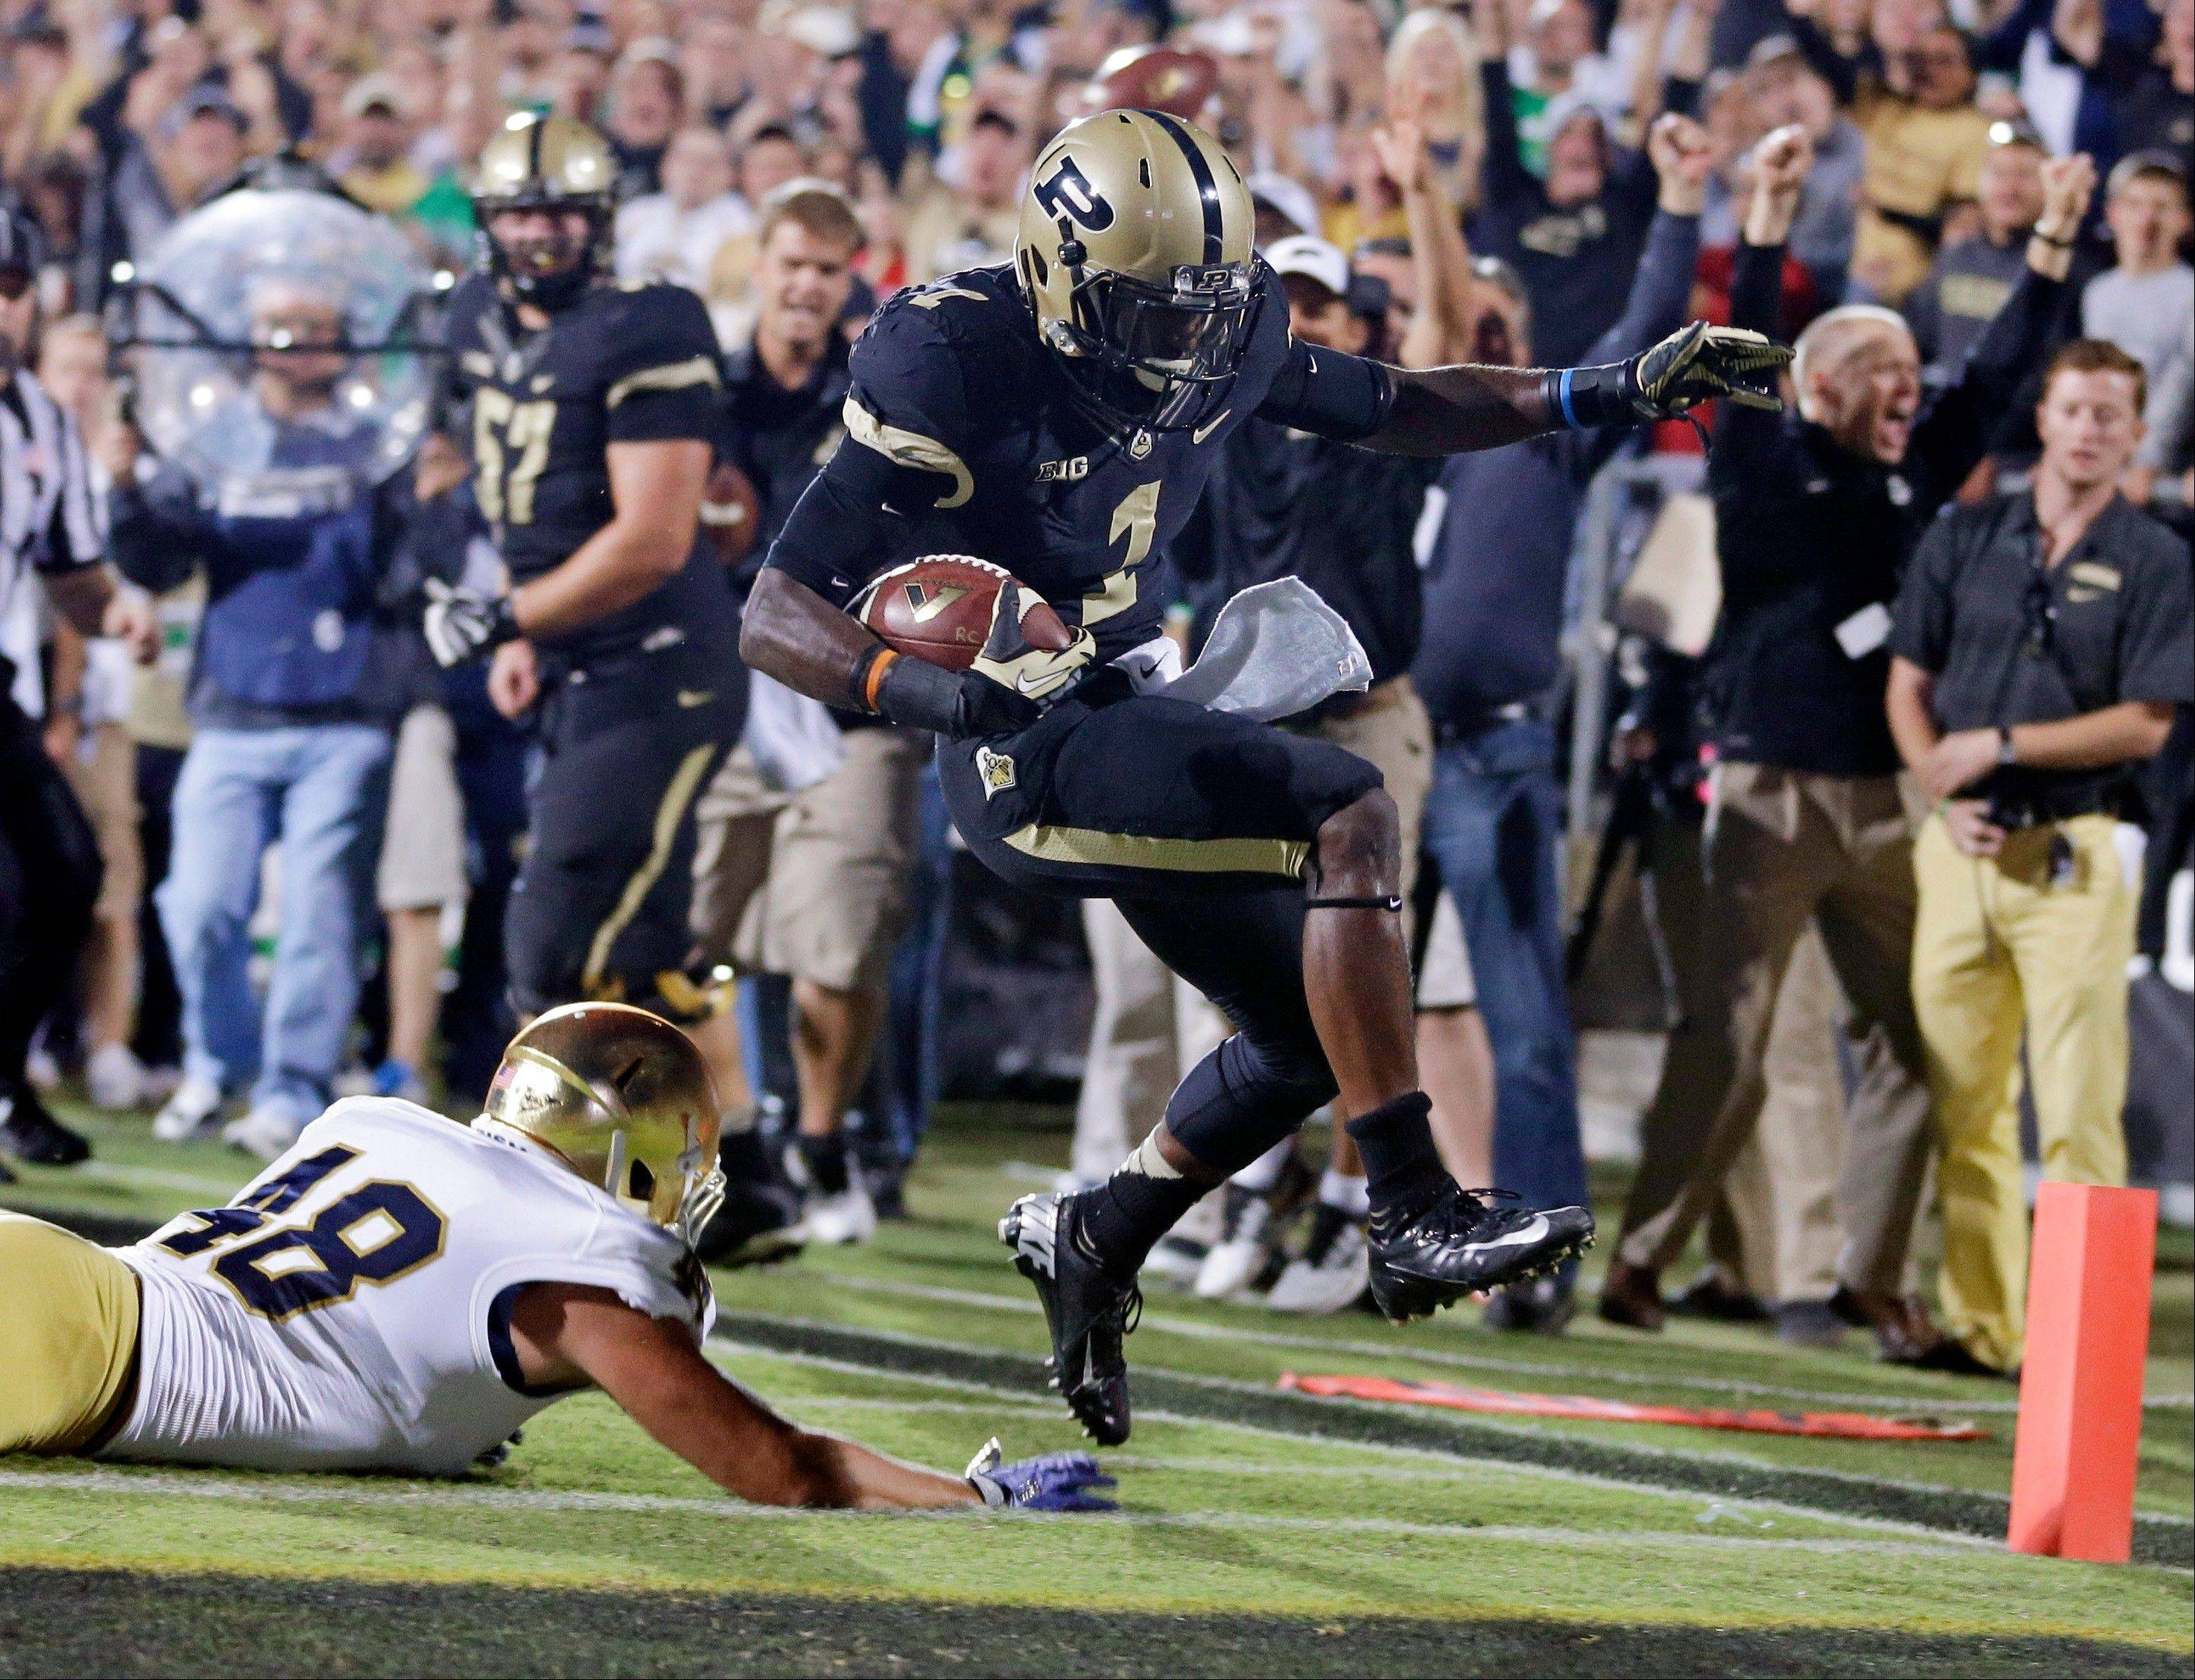 Purdue running back Akeem Hunt, right, goes over Notre Dame linebacker Dan Fox on his way to a touchdown during the first half of Saturday�s game in West Lafayette, Ind. The Boilermakers nearly upset Notre Dame.